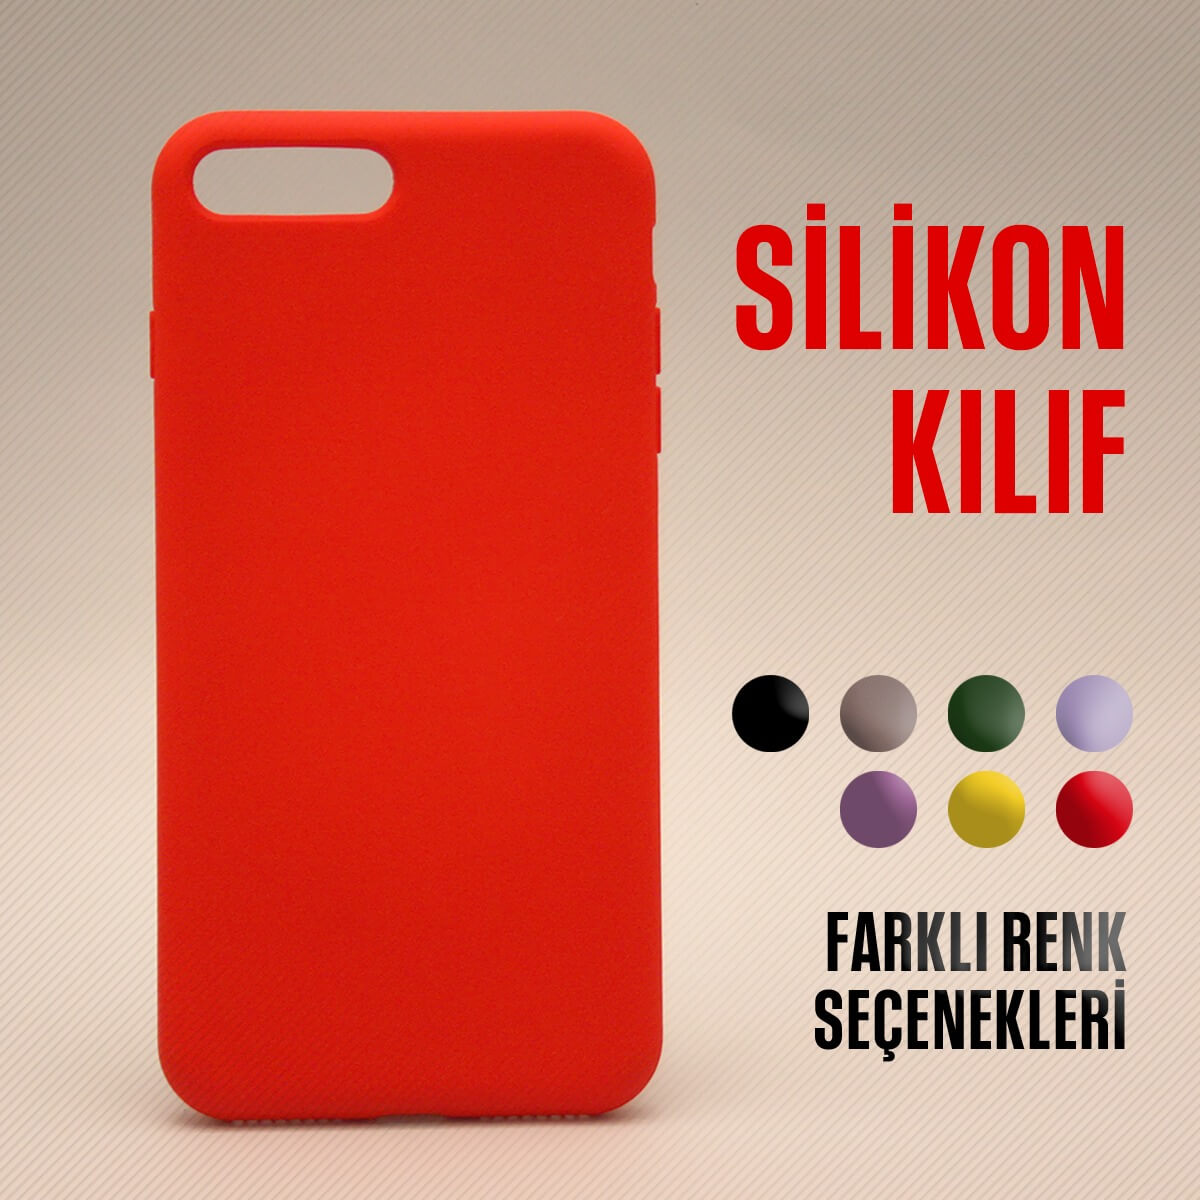 iphone-lasnman-klif-3